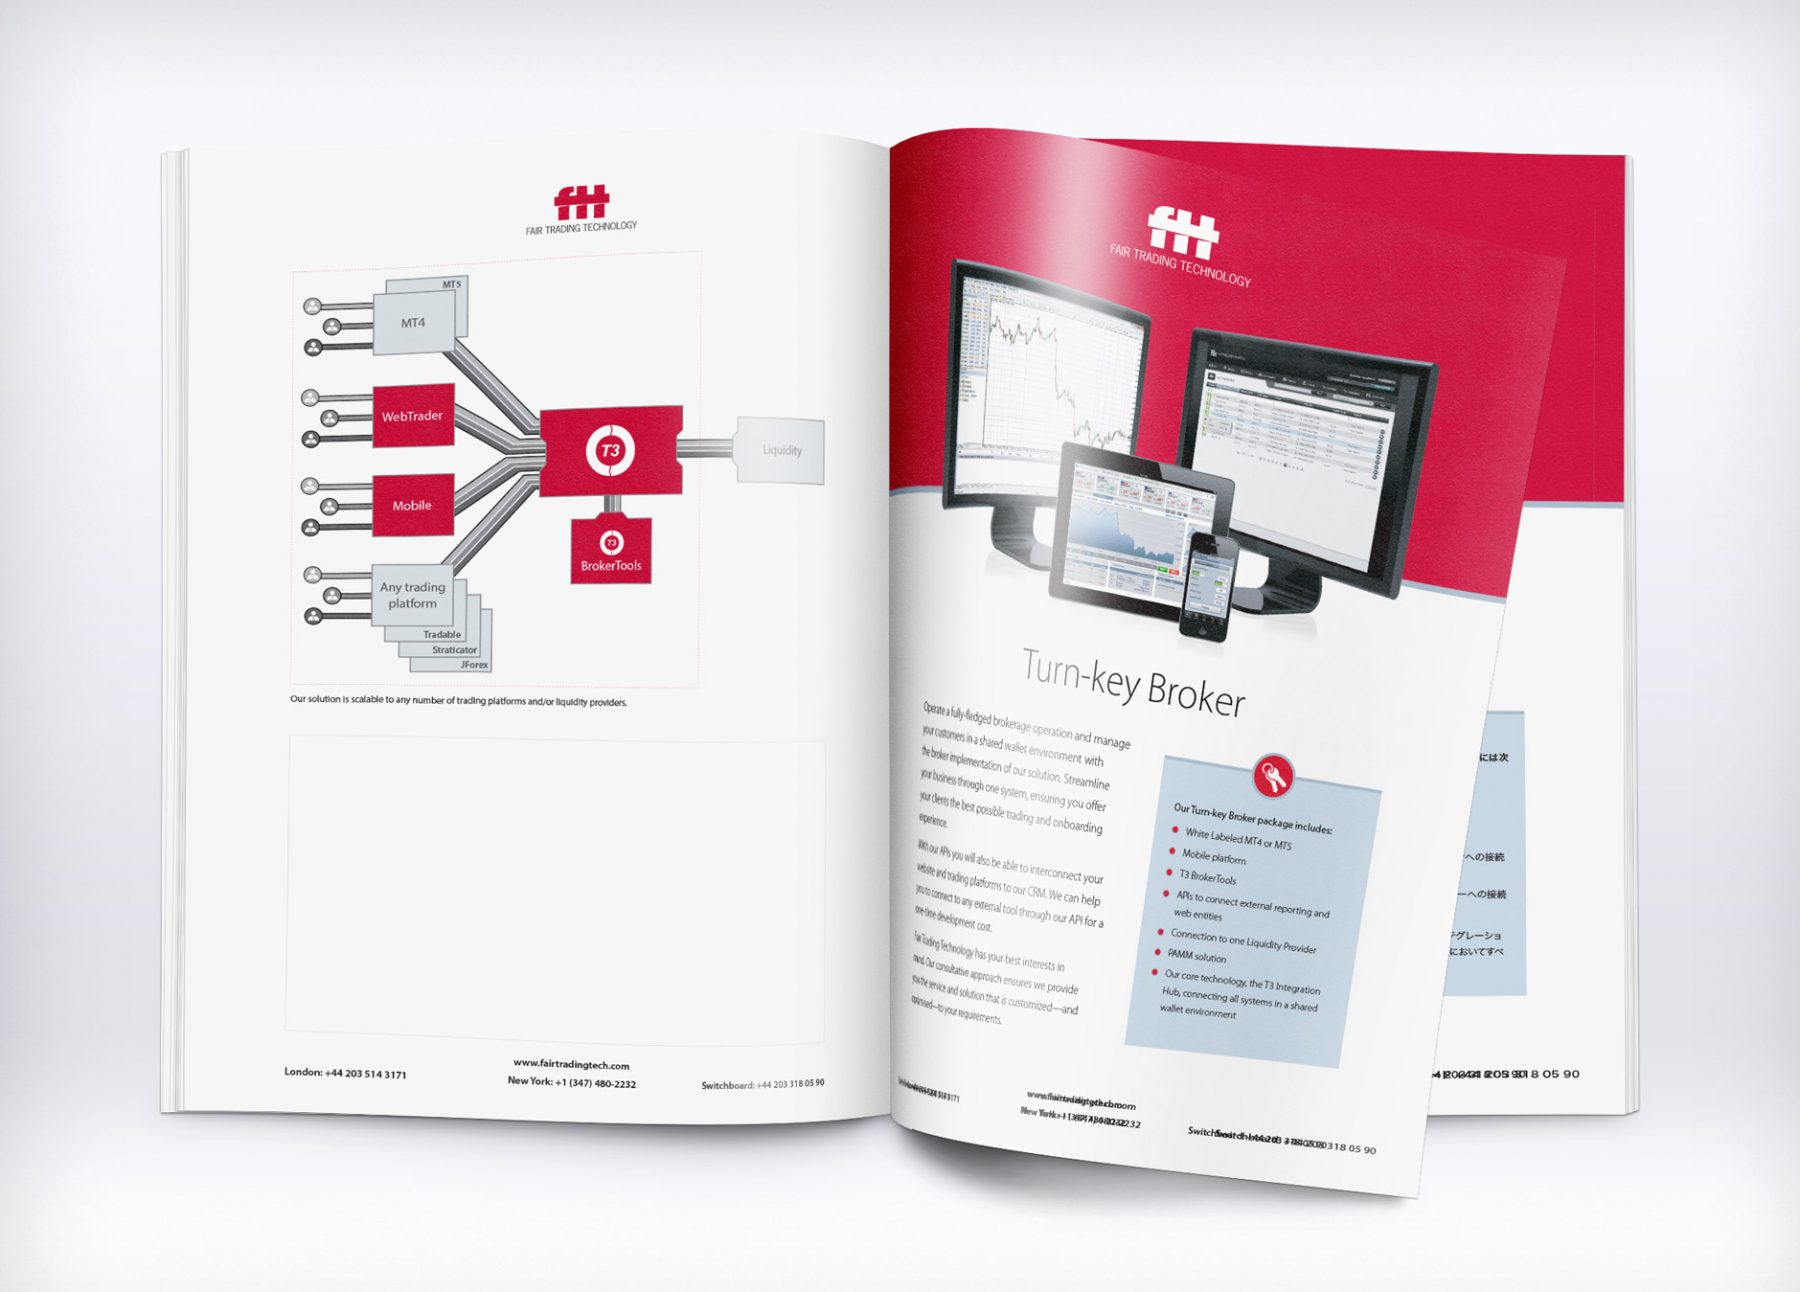 Two-page product information sheets were created for customer sales meetings and trade shows, produced in English, Japanese and Chinese.